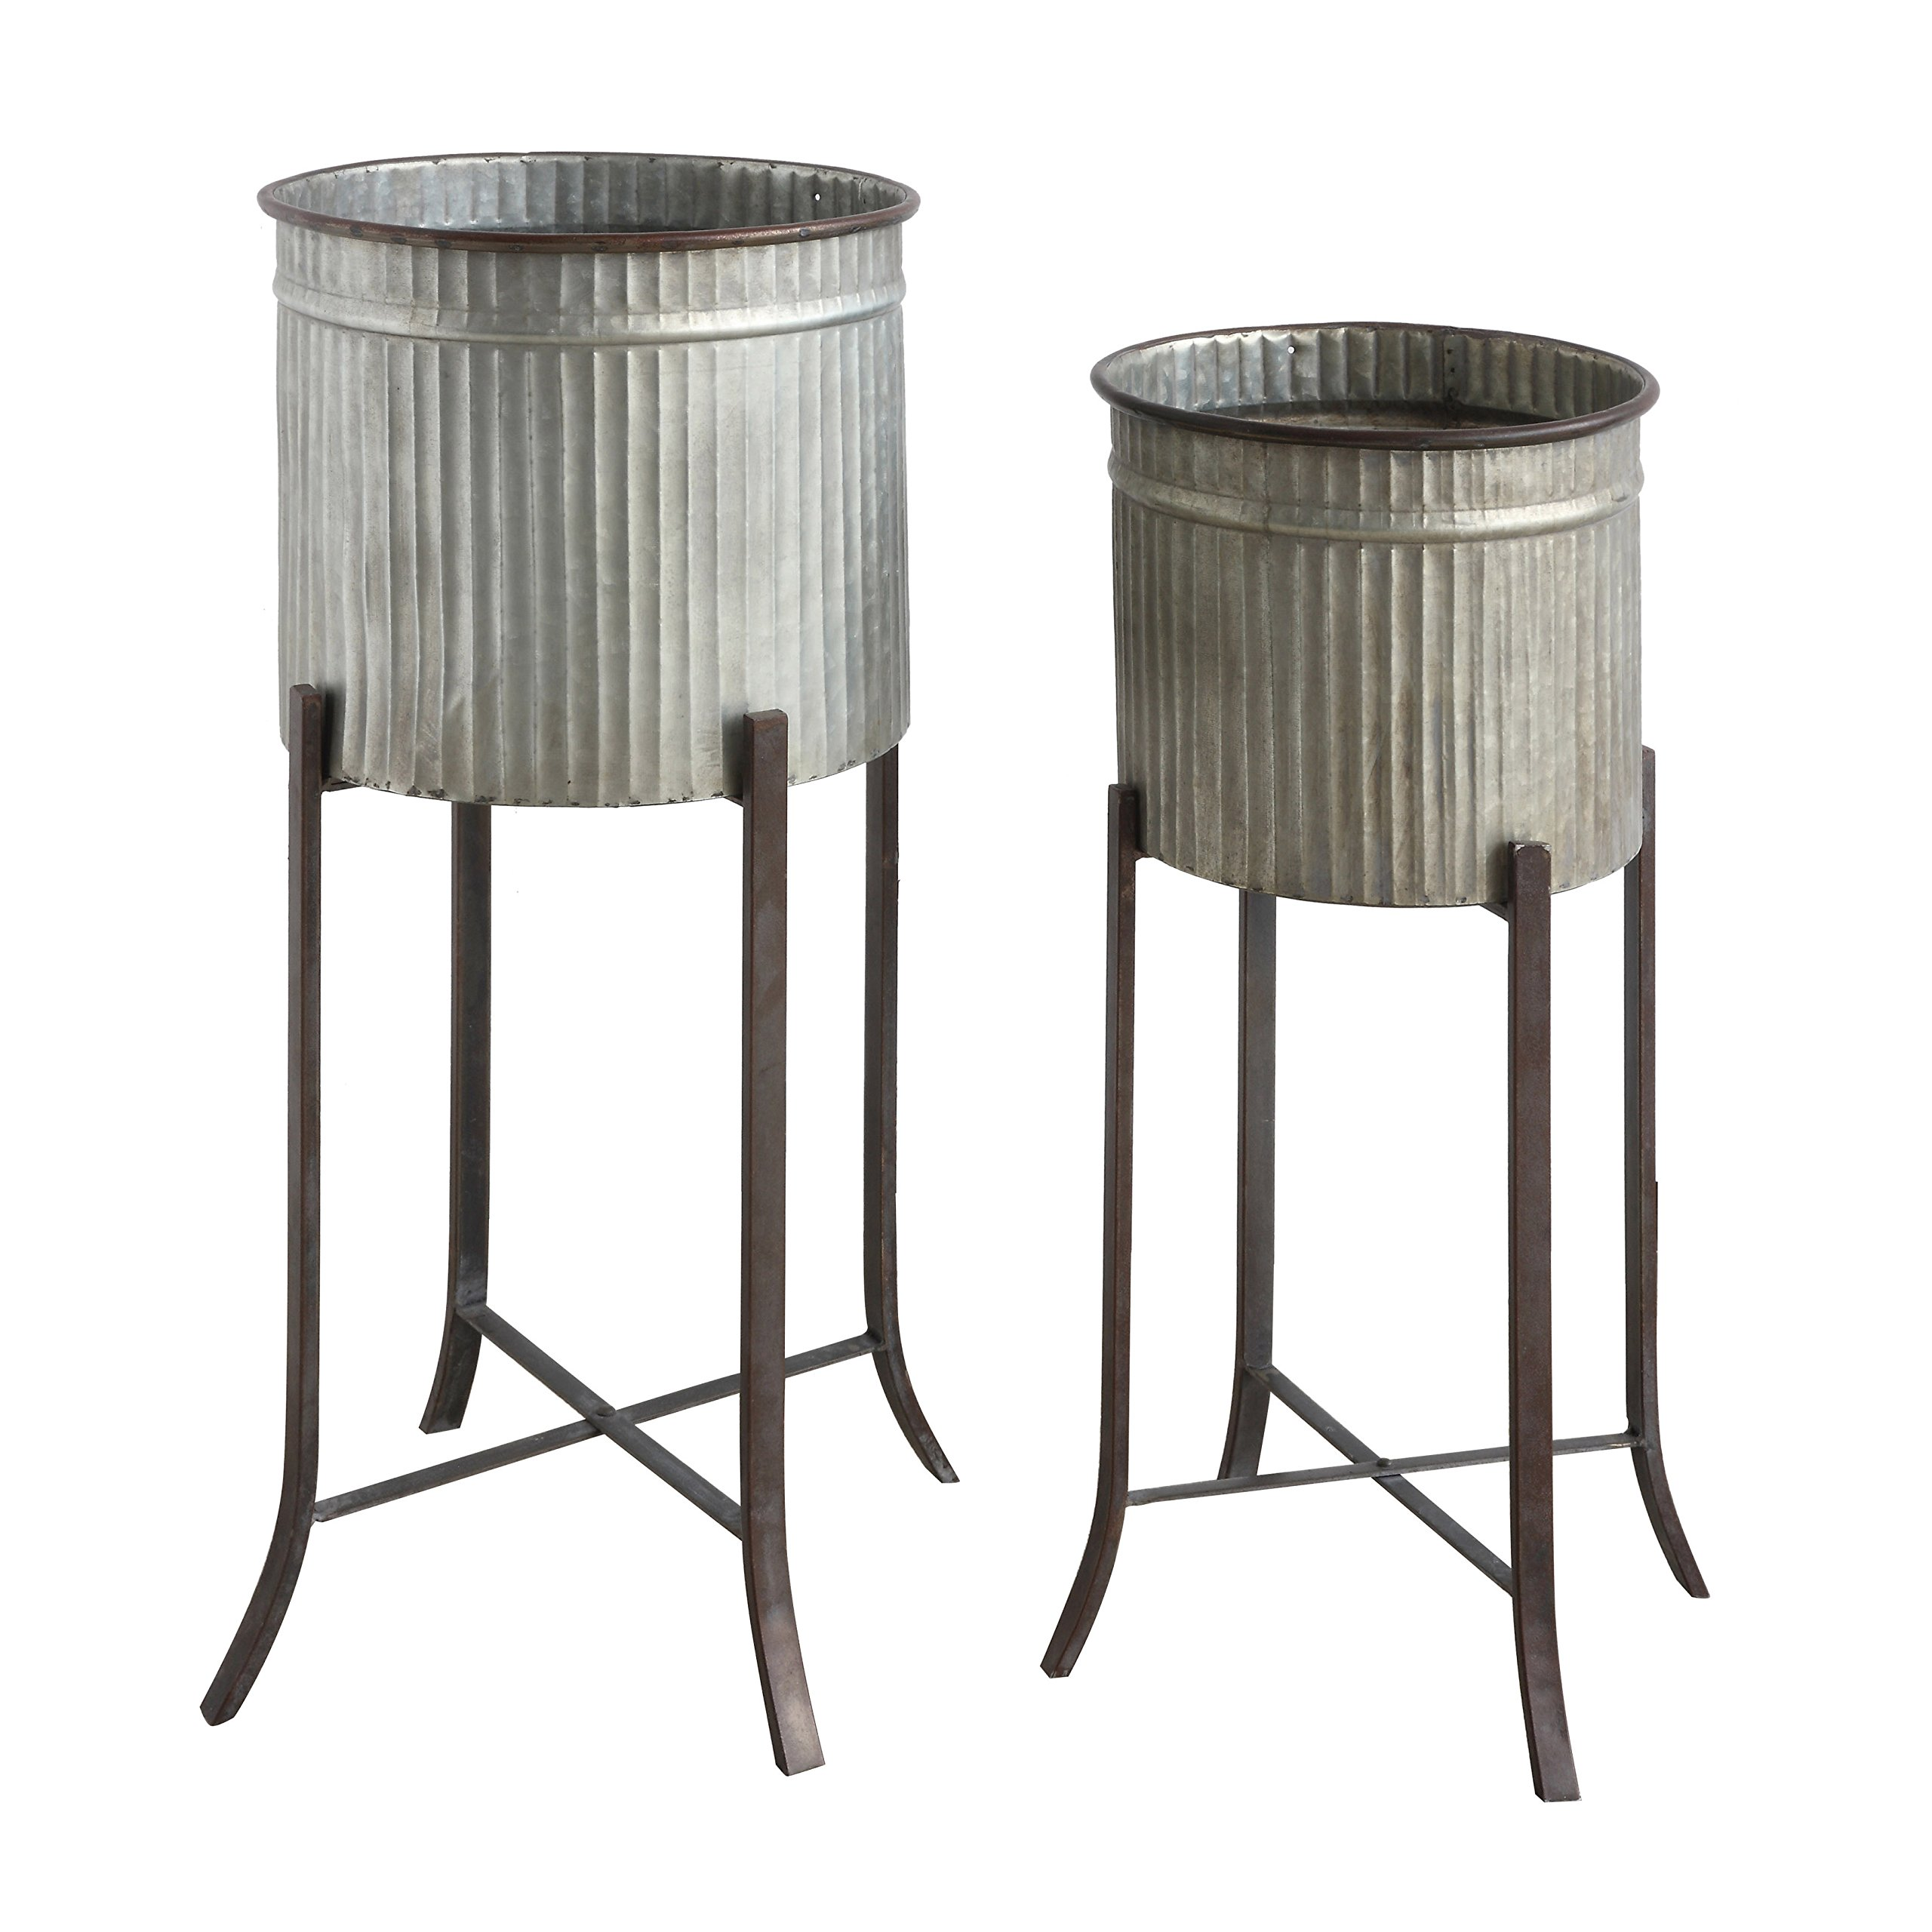 Creative Co-op Set of 2 Iron Planters on Stands